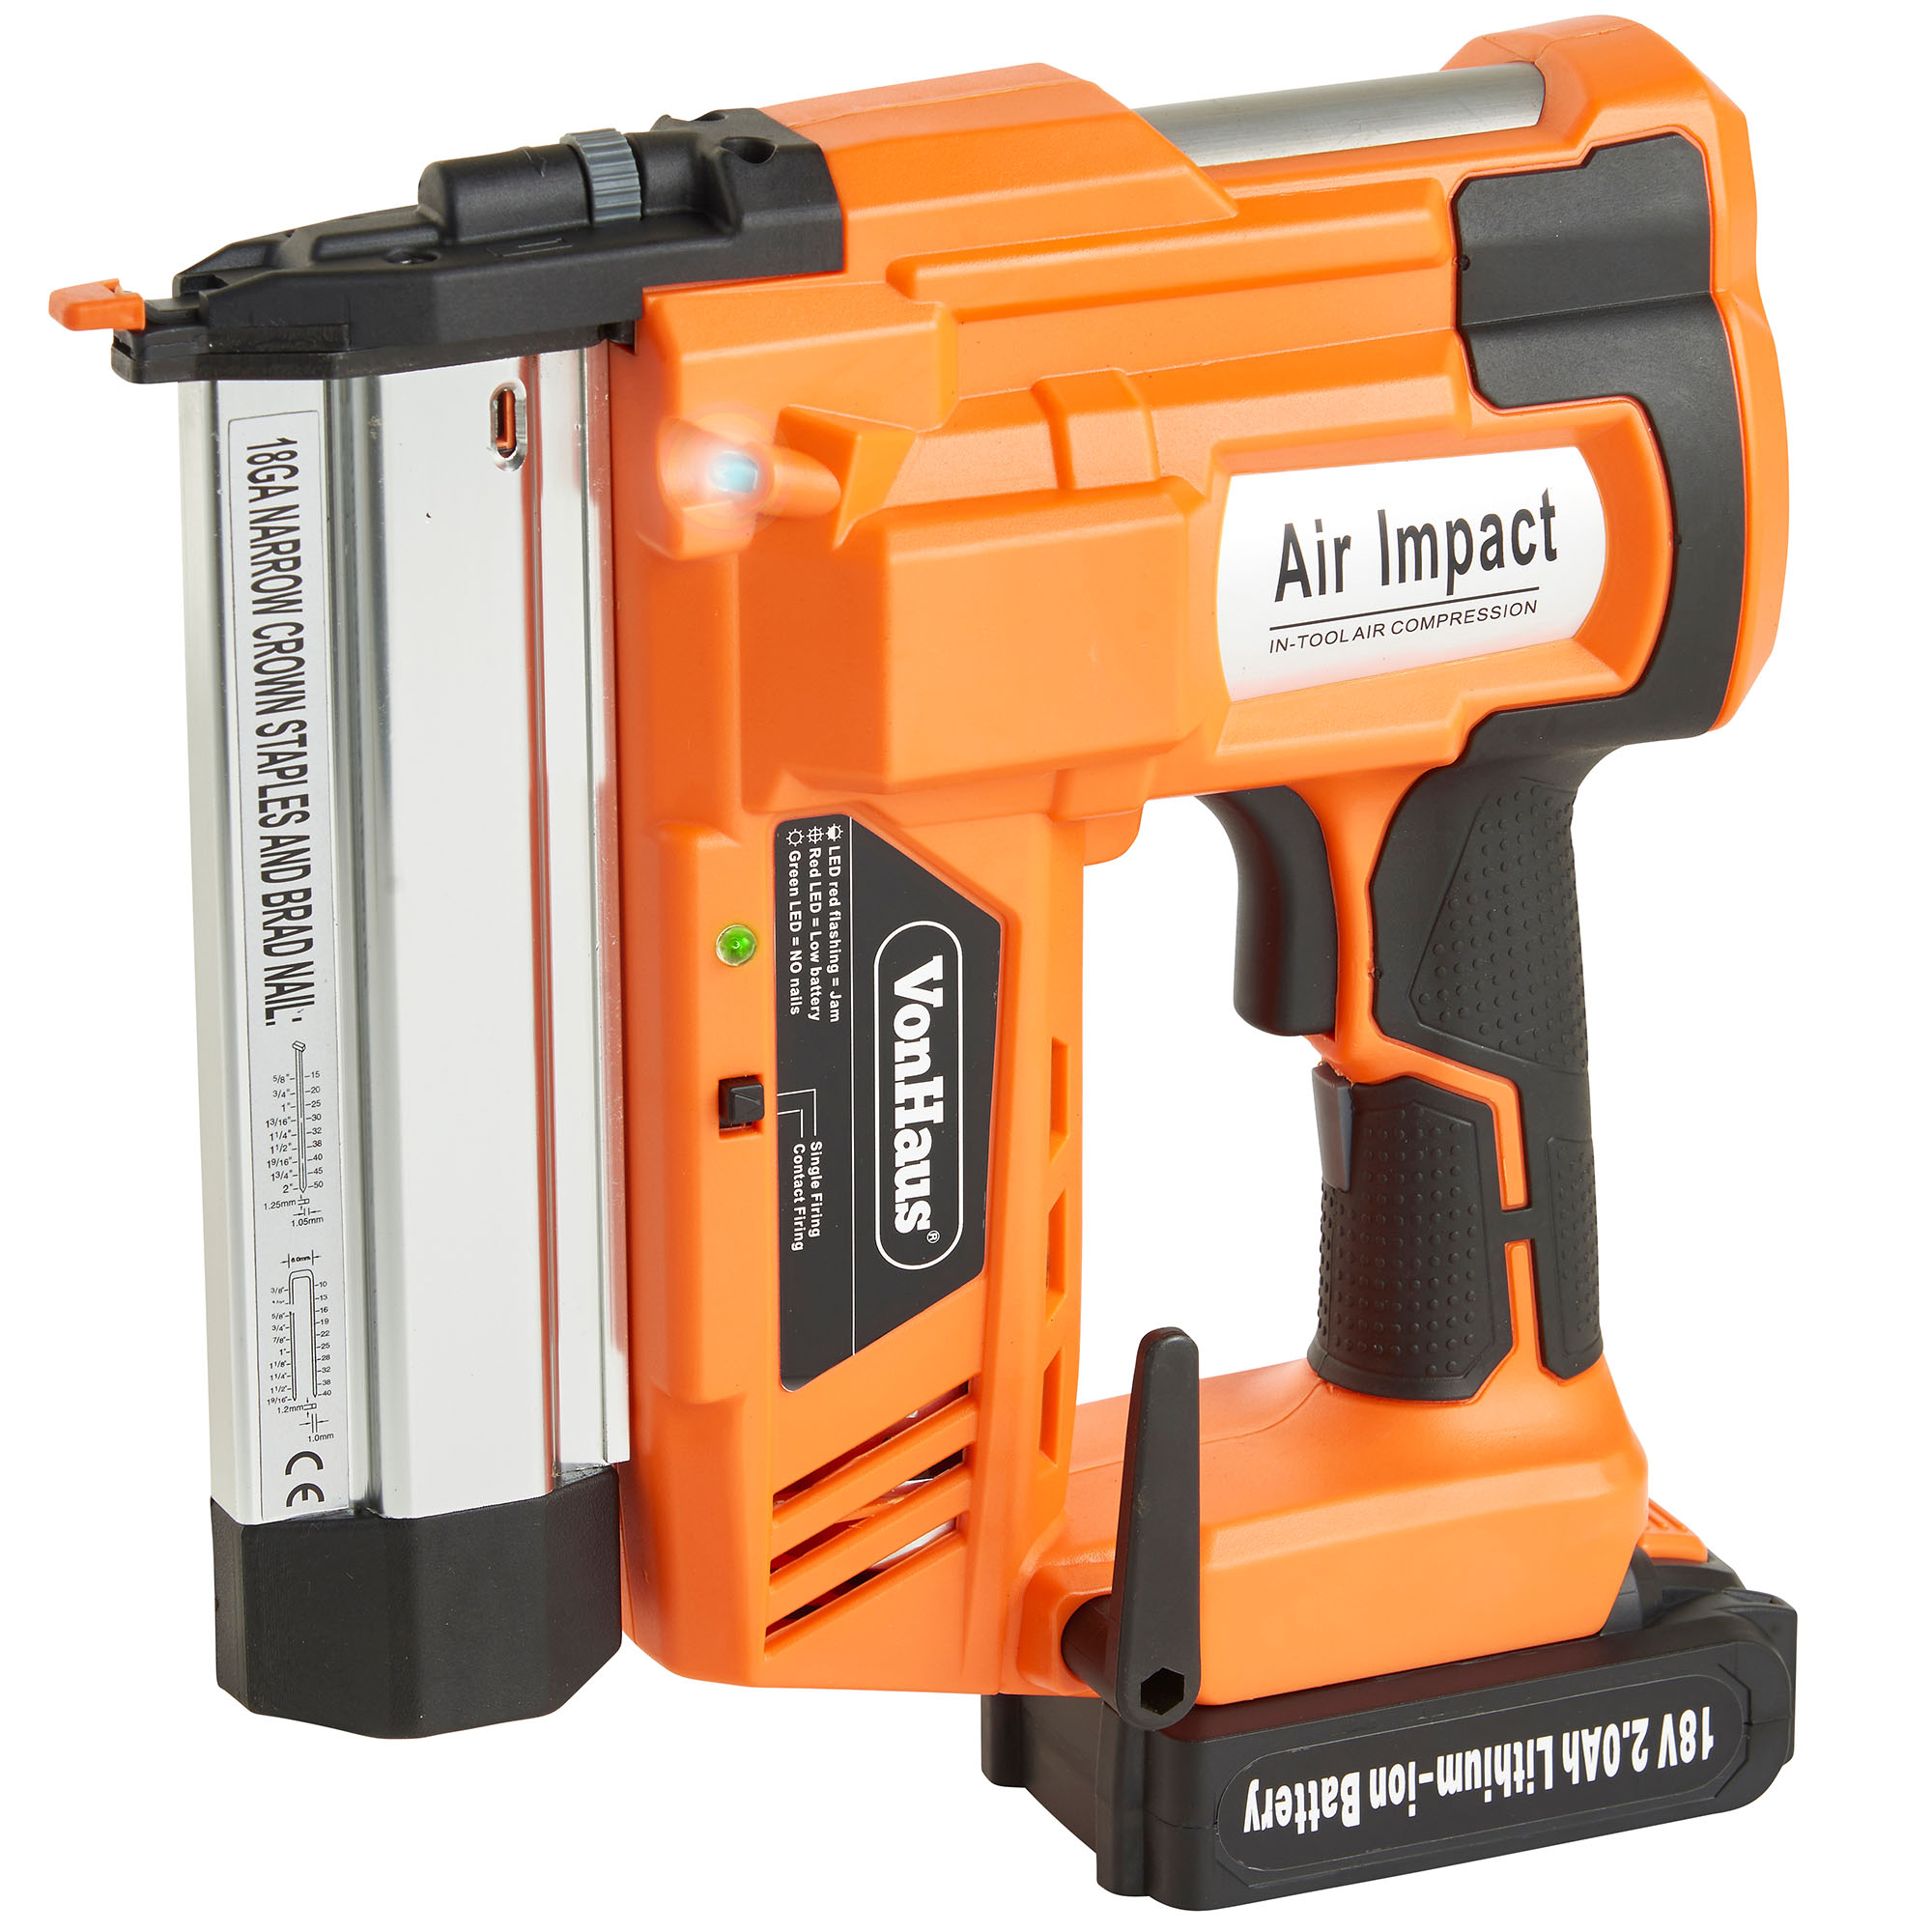 Nail Gun For Picture Frames